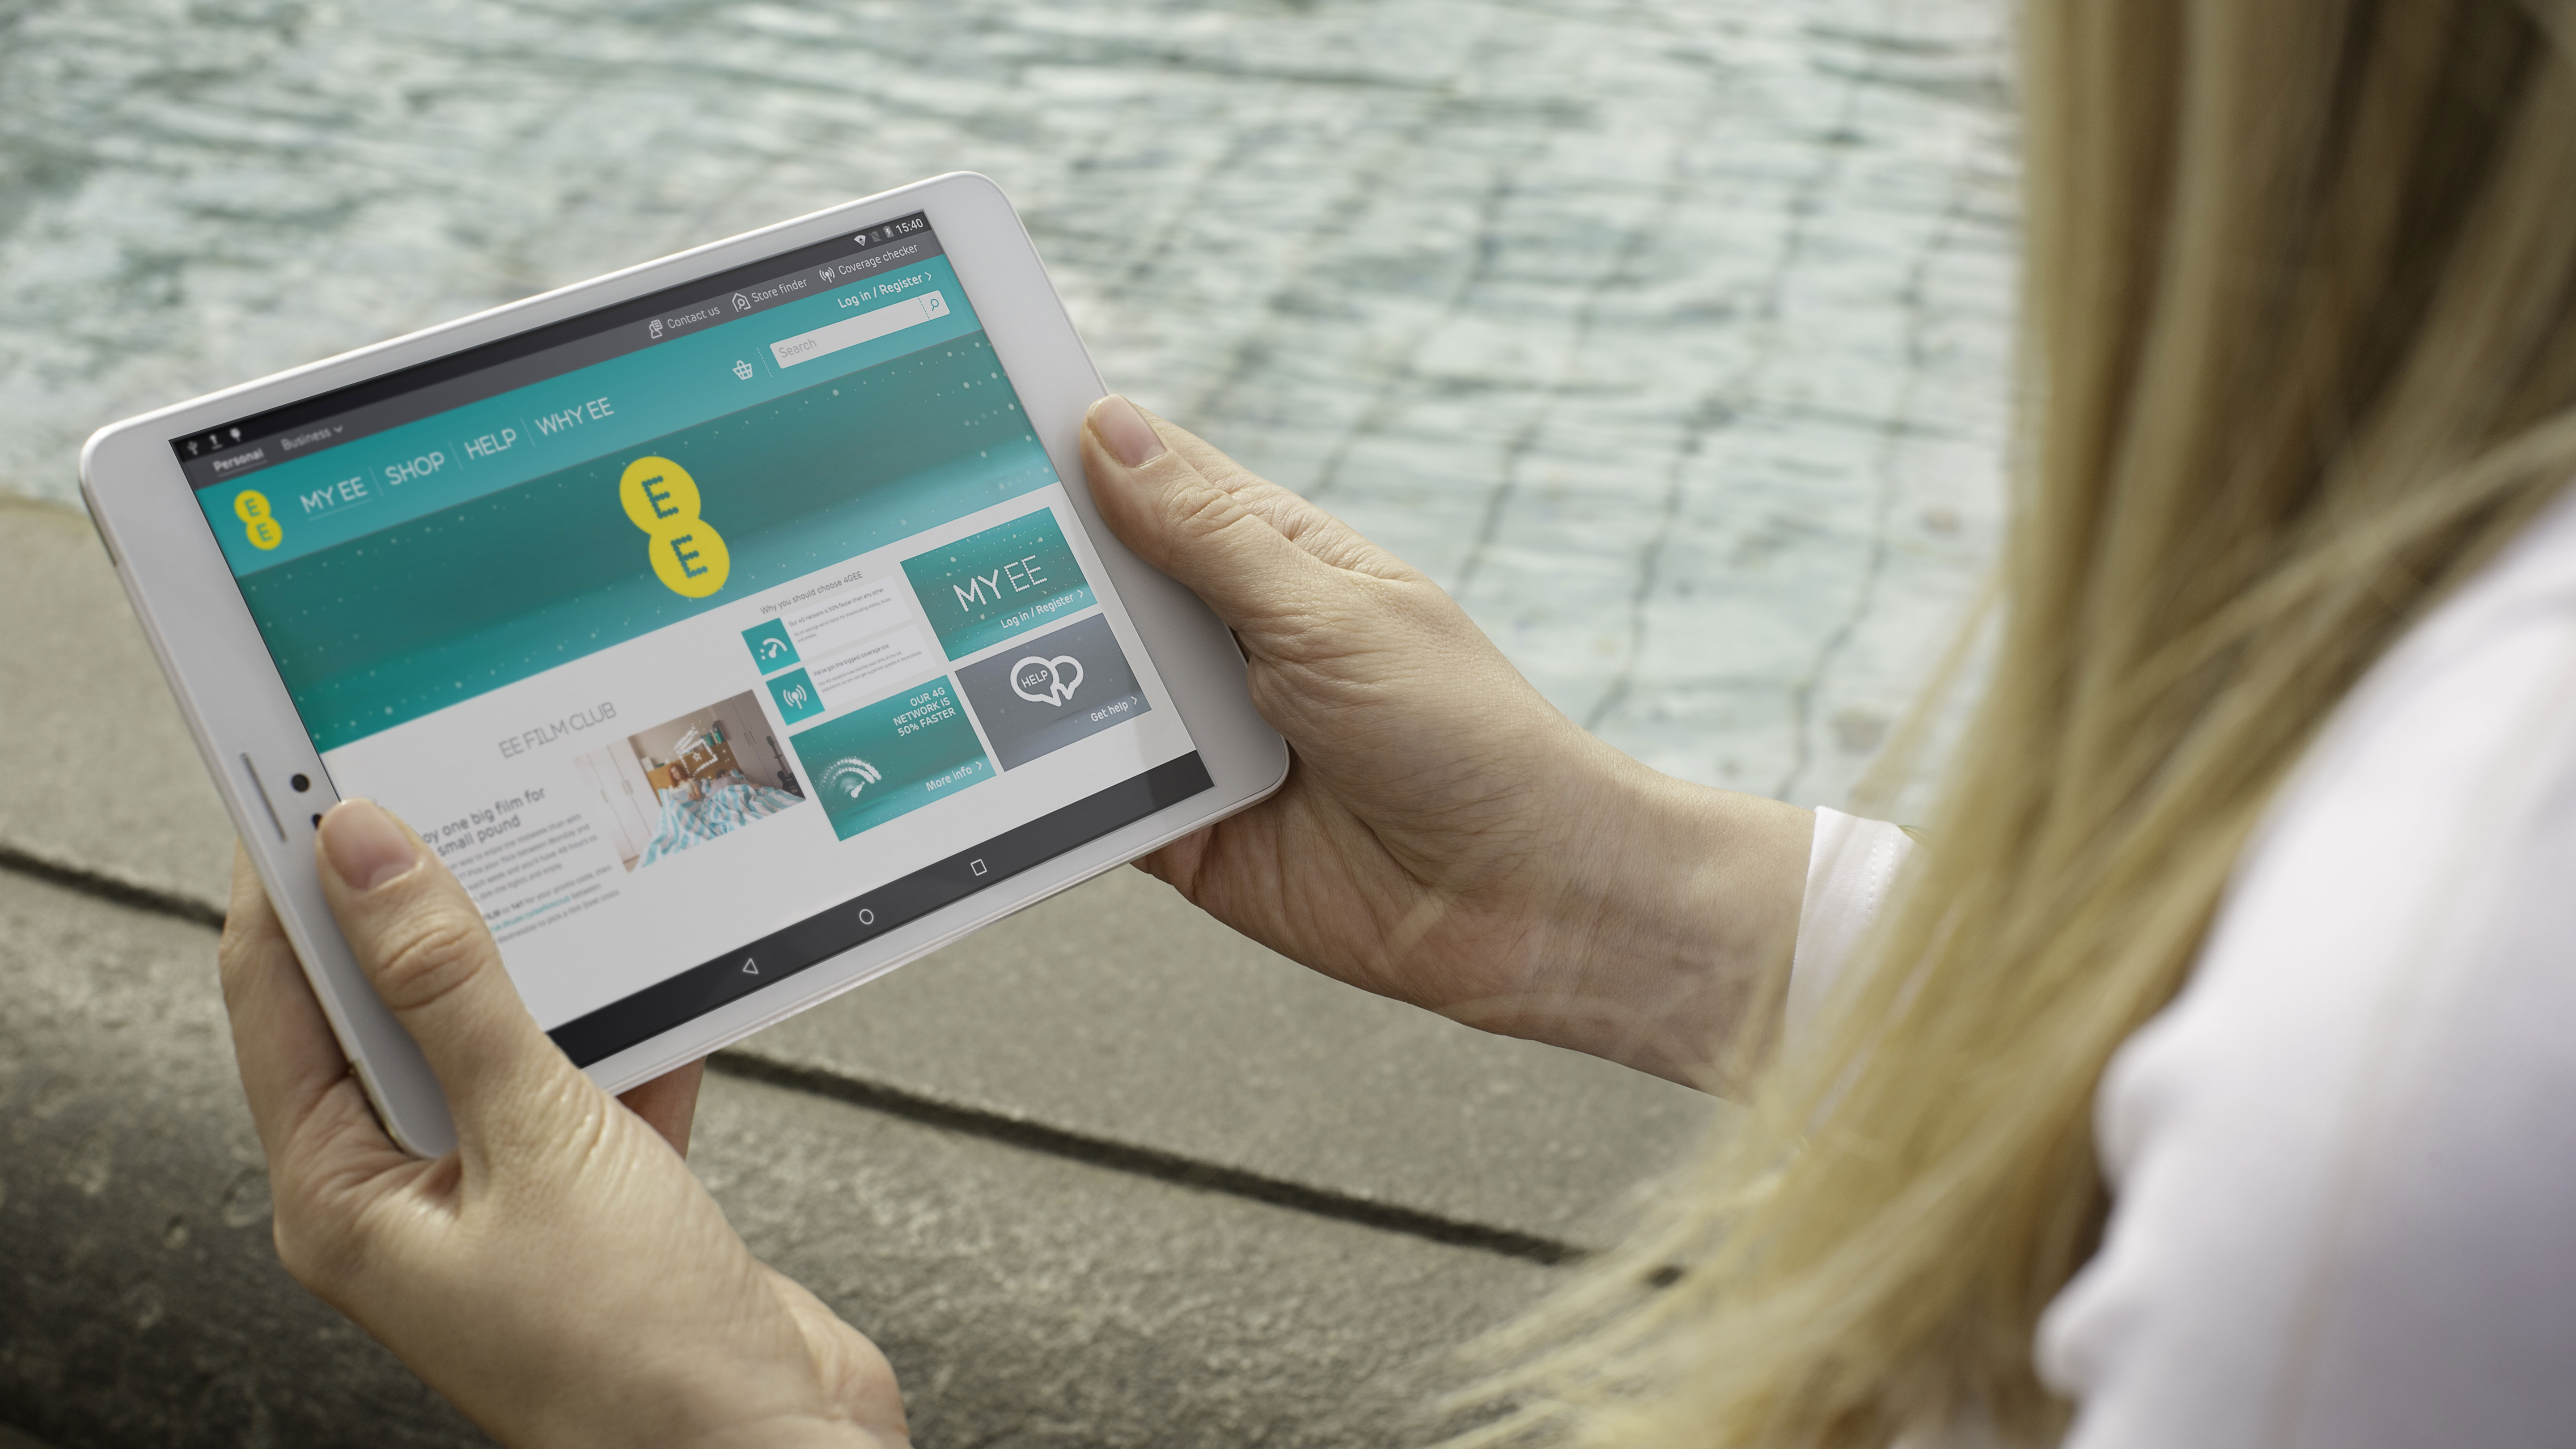 EE 'fills in' 12,000 square km of 4G notspots